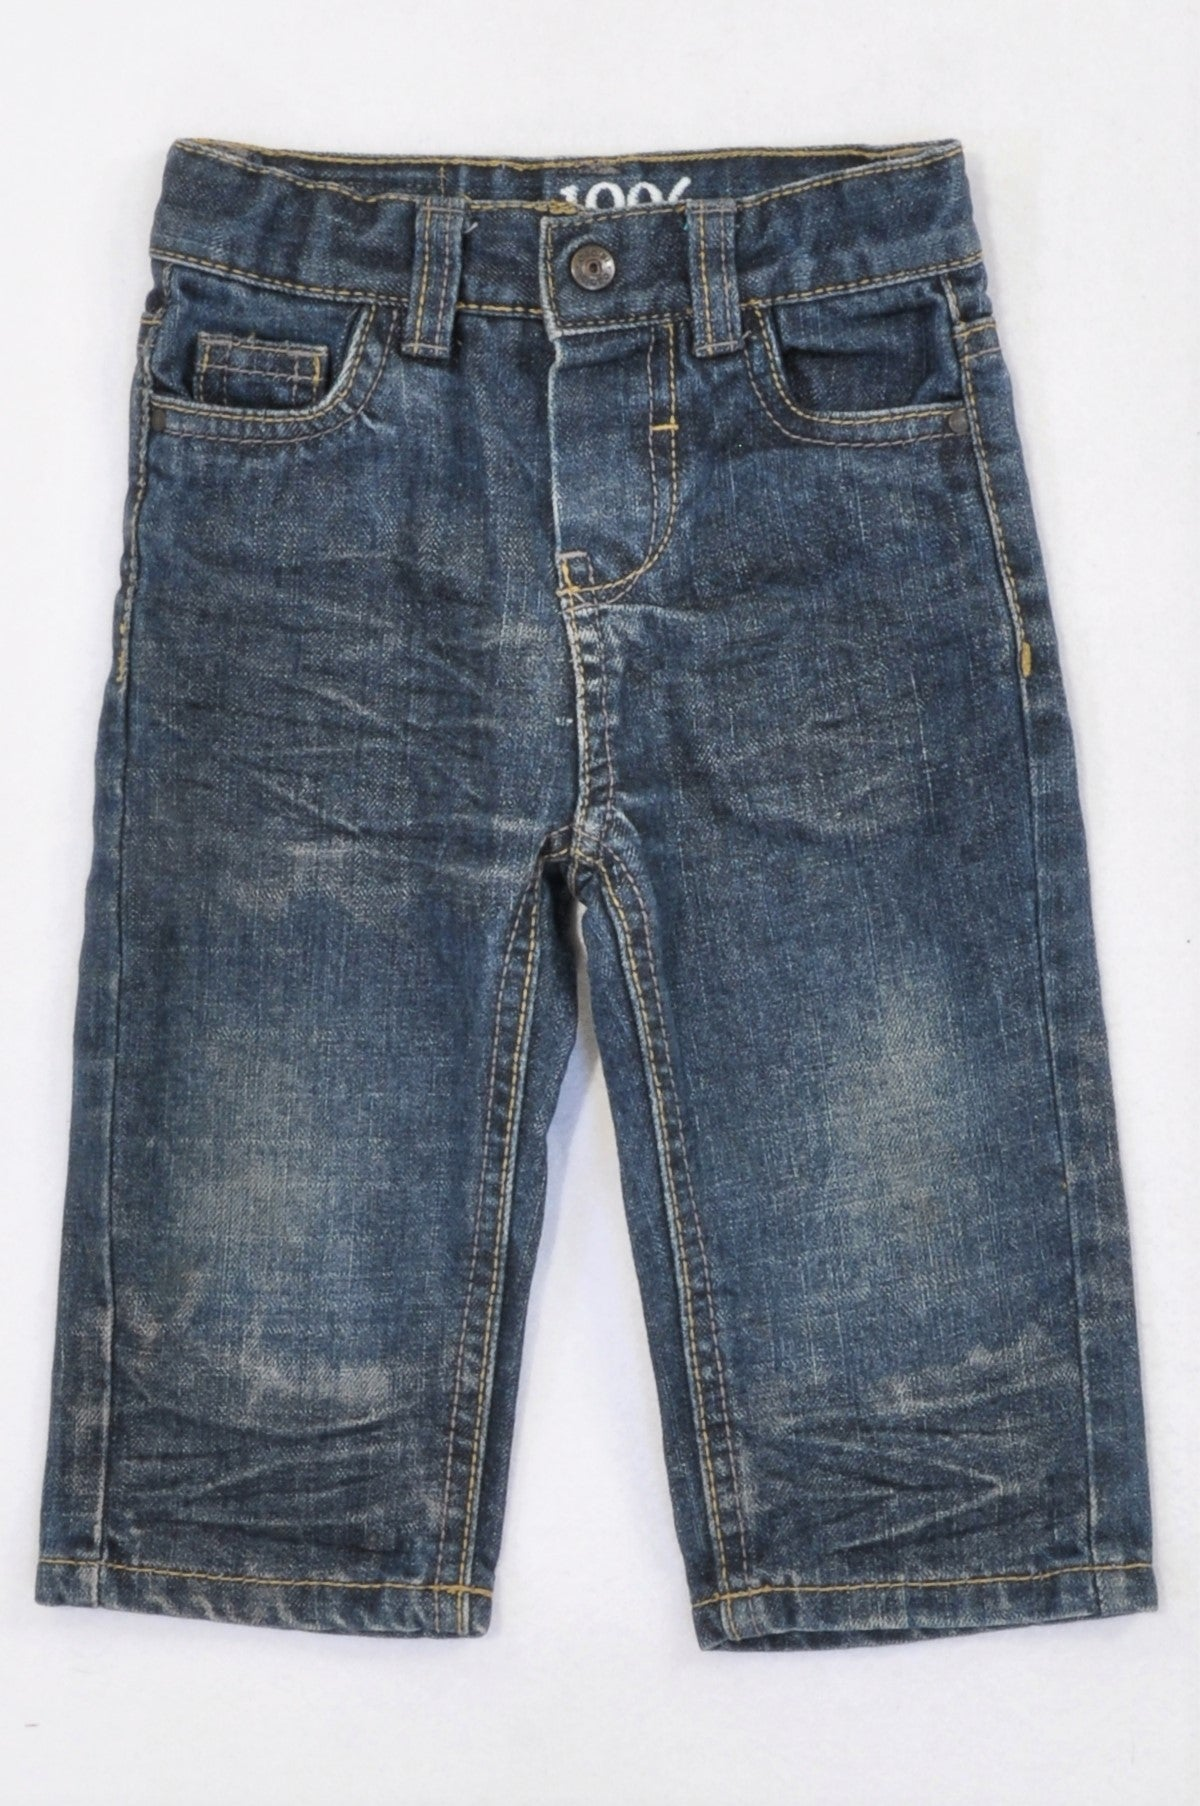 Obaibi Dark Stone Washed Straight Legged Jeans Boys 6-12 months